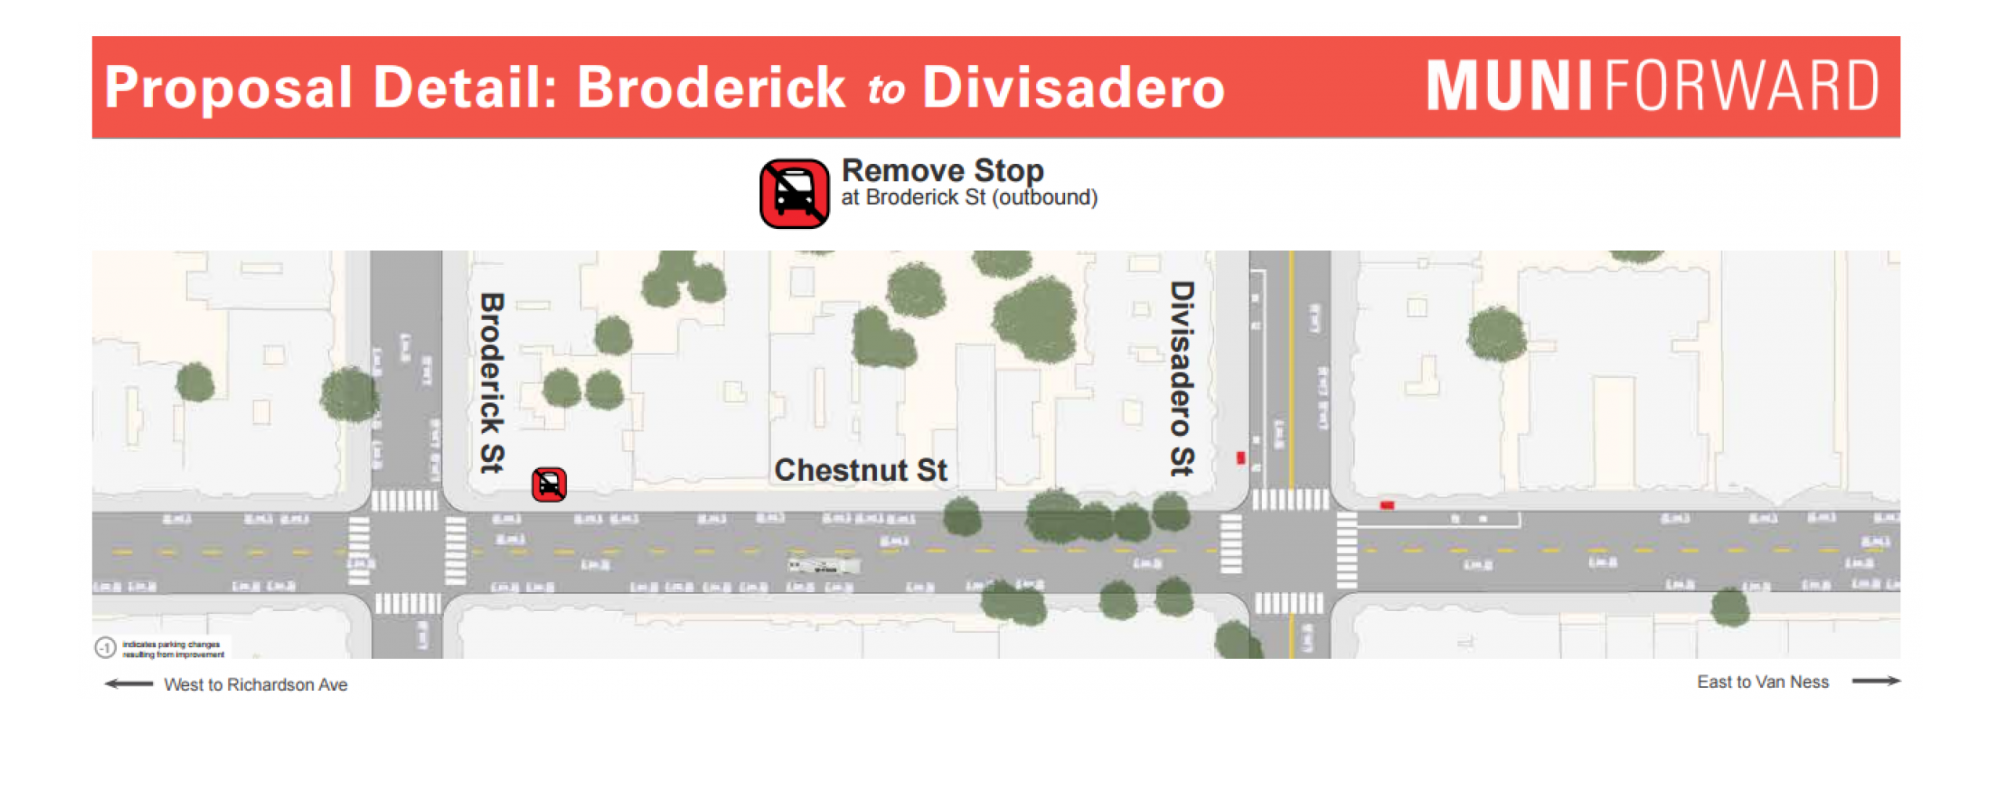 Proposed Detail: Broderick to Divisadero